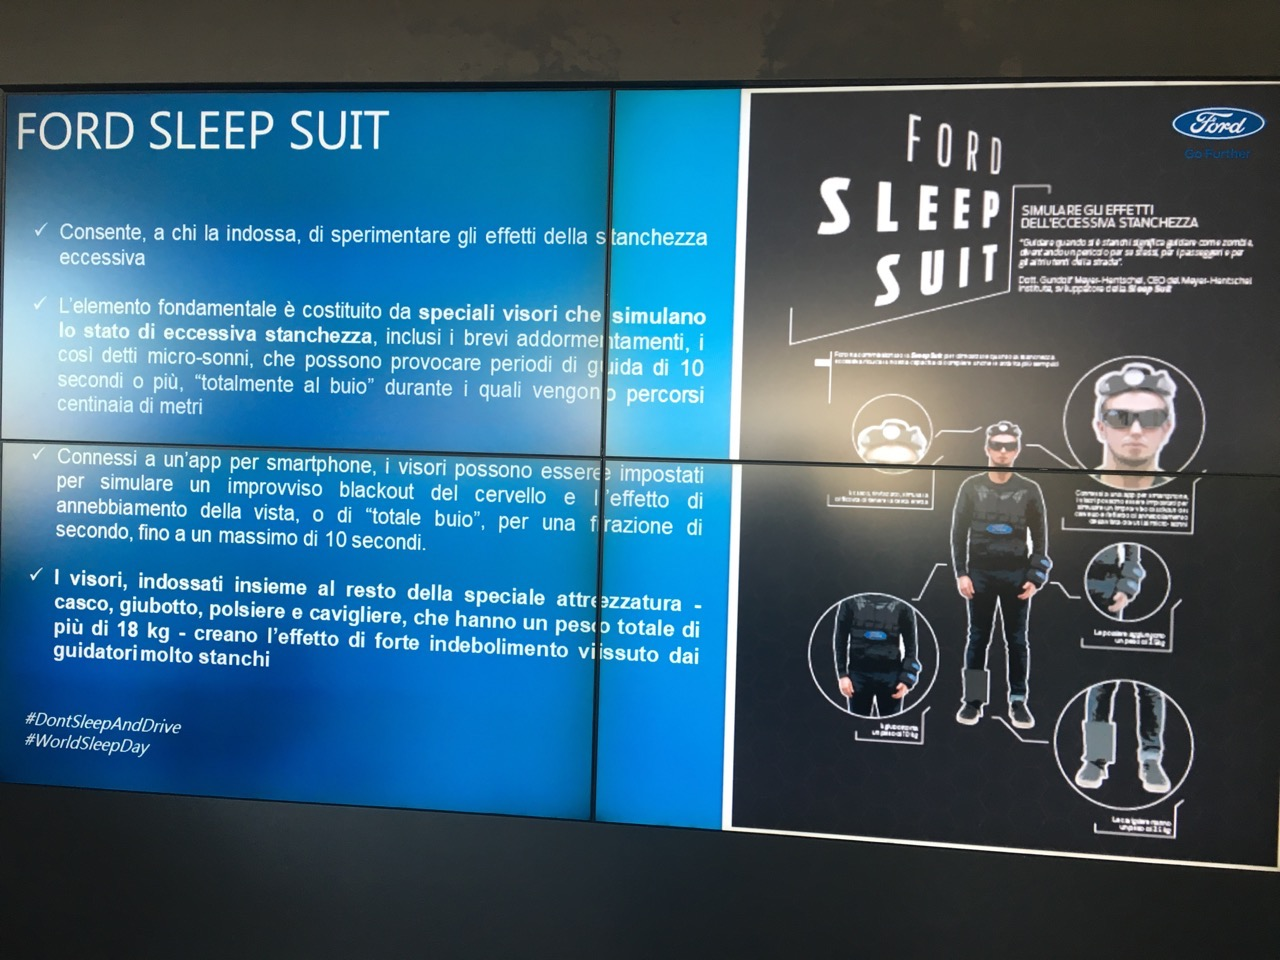 Ford Sleep Suit - Milano